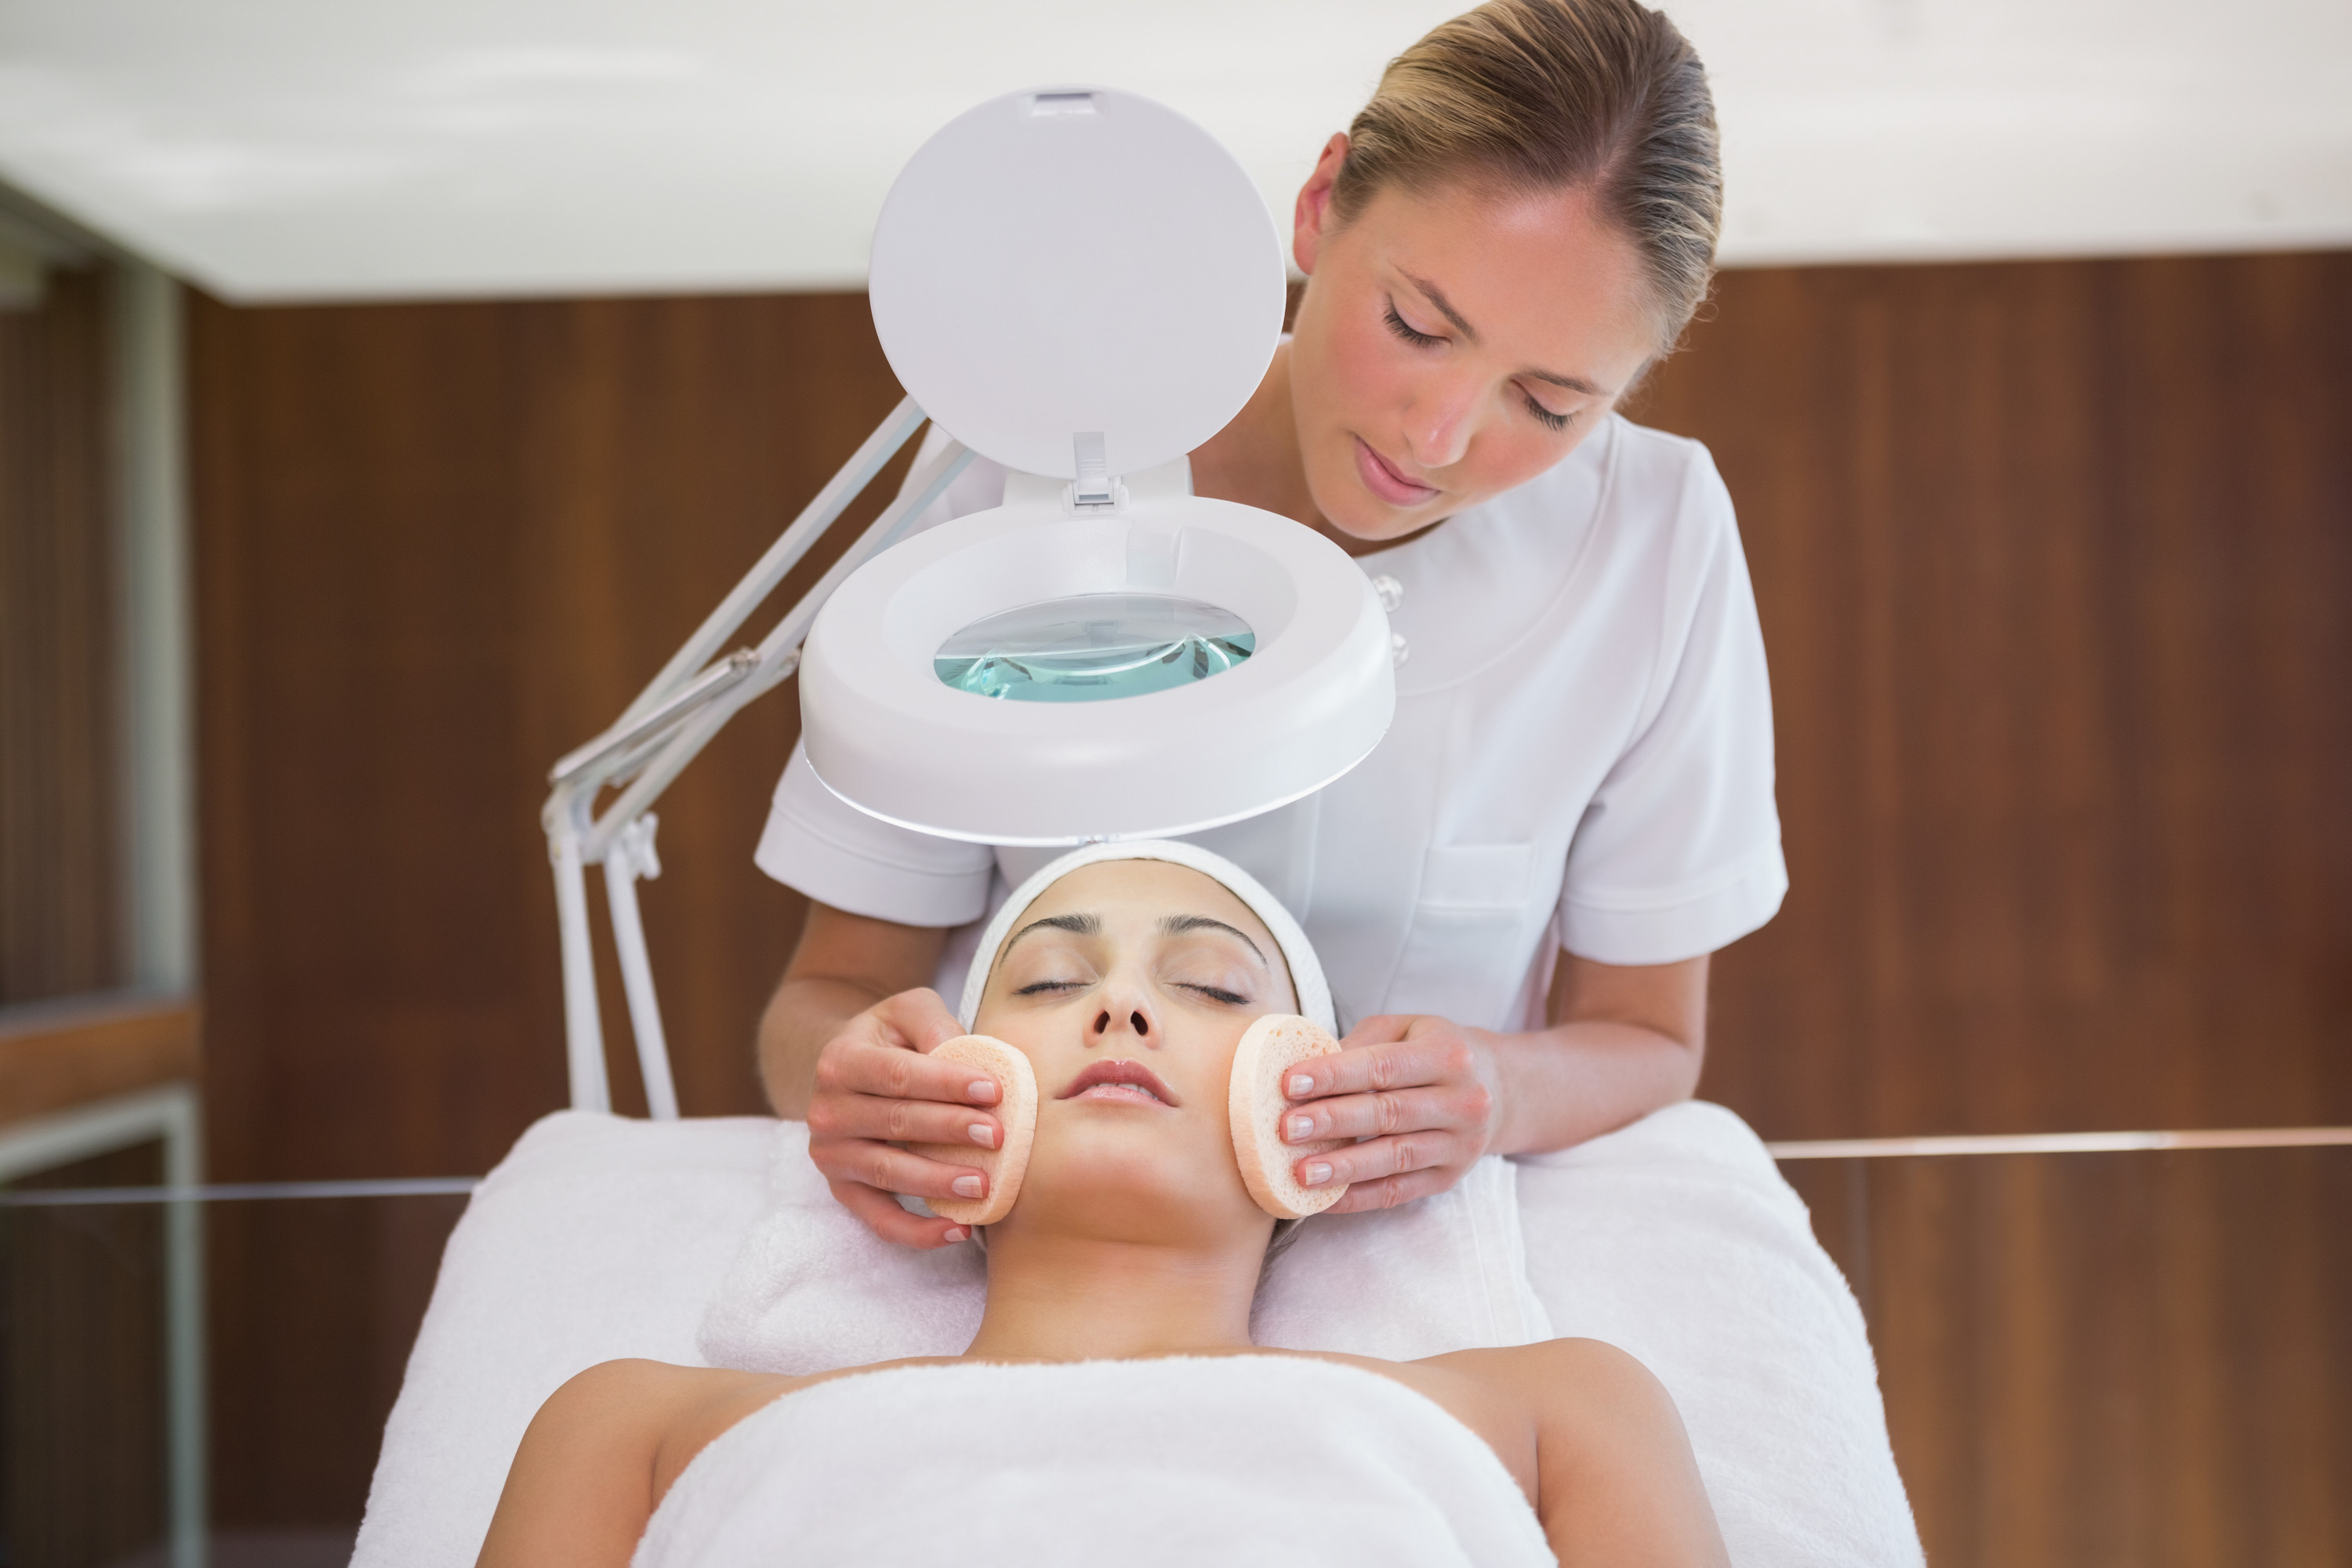 NVQ Beauty Therapy Level 2 & Level 3 (general) – Comprehensive Course  (combined) | www.skinastute.com